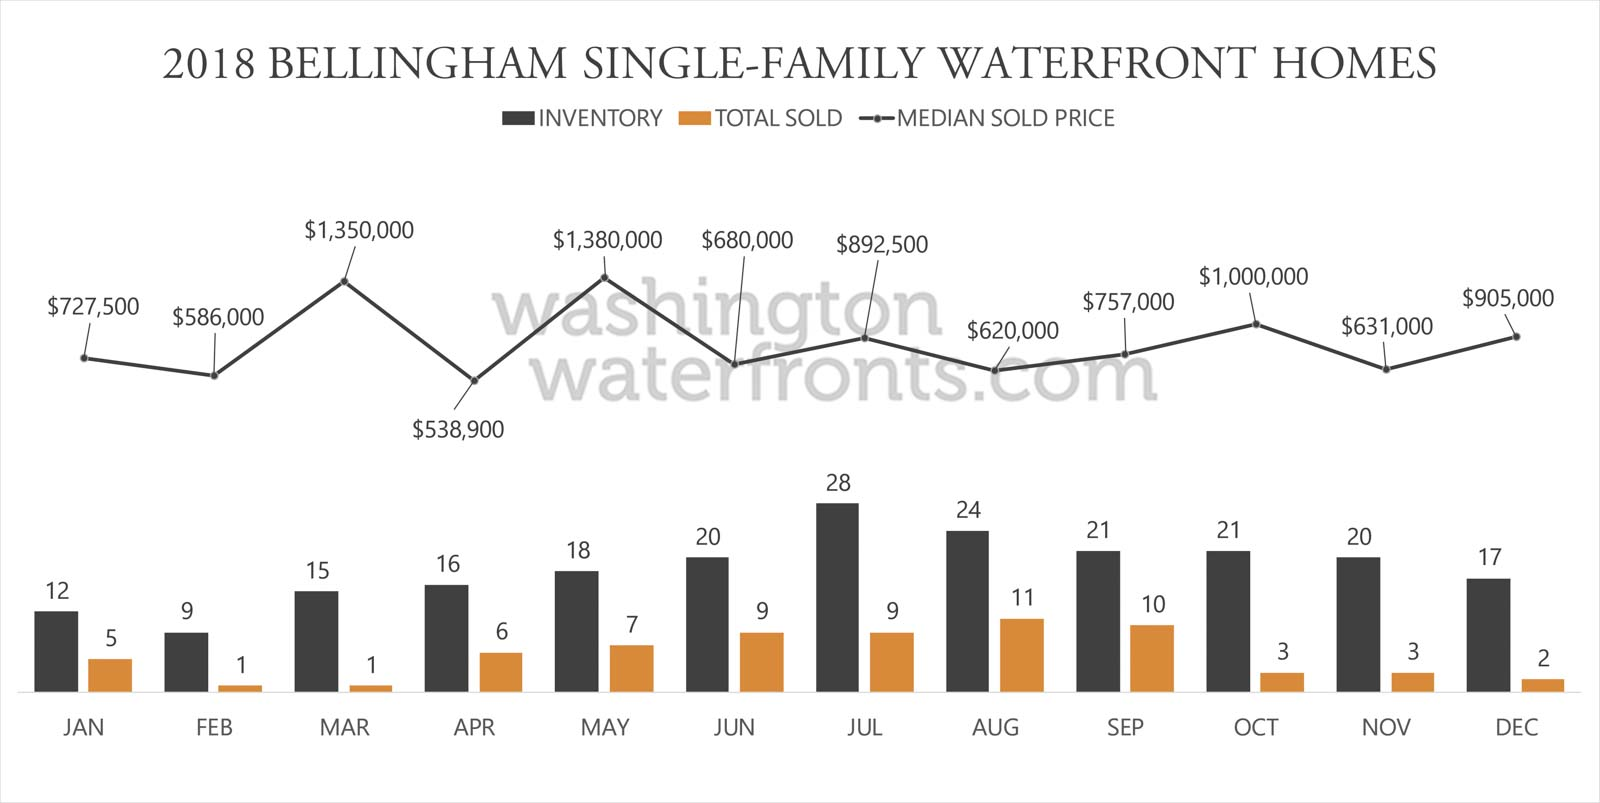 Bellingham Waterfront Inventory